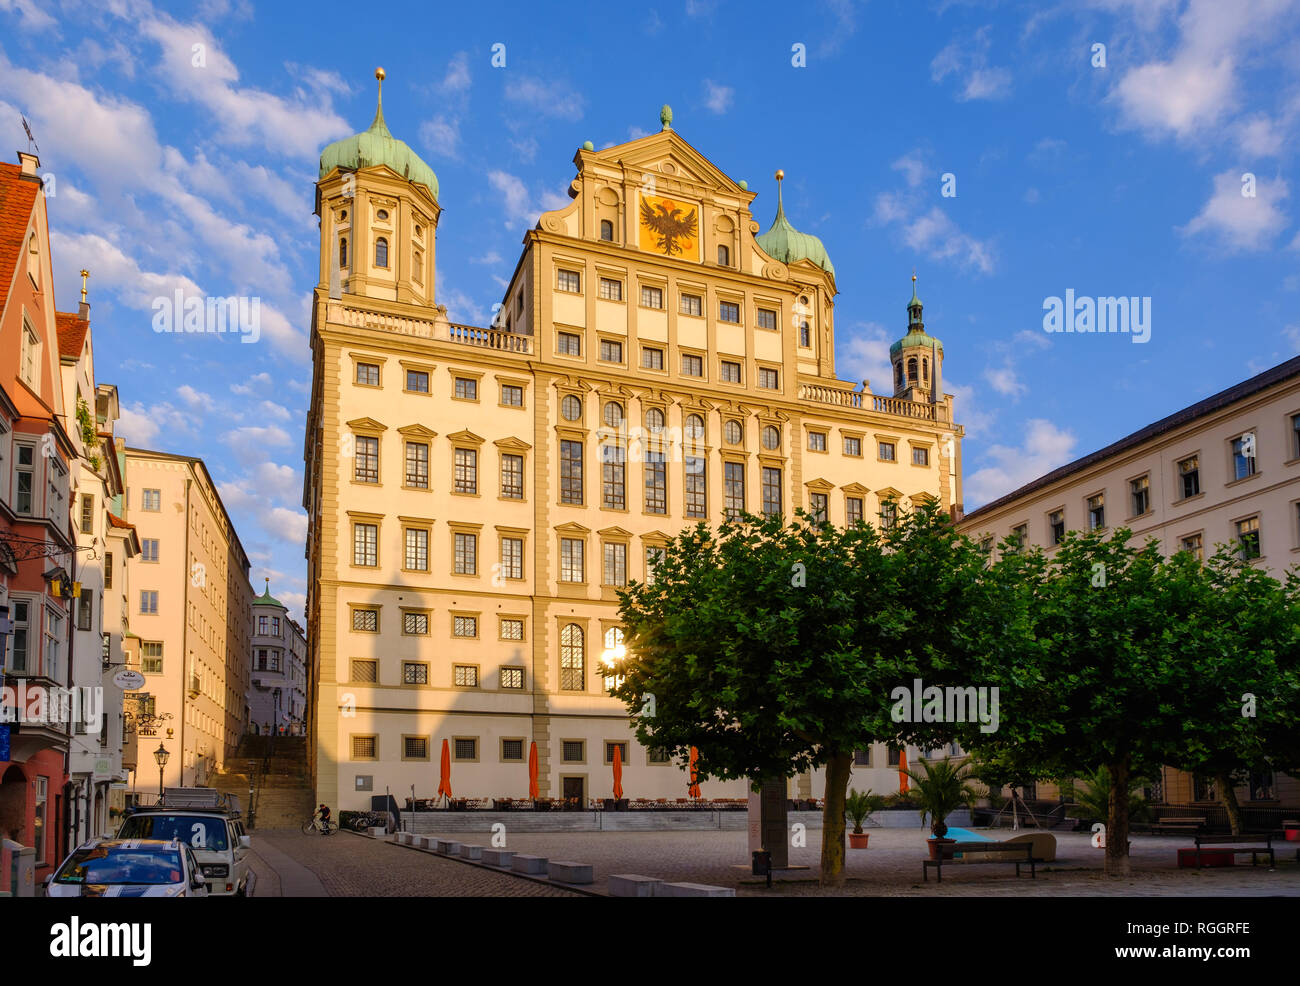 Germany, Bavaria, Augsburg, Townhall at Elias-Holl-Square - Stock Image